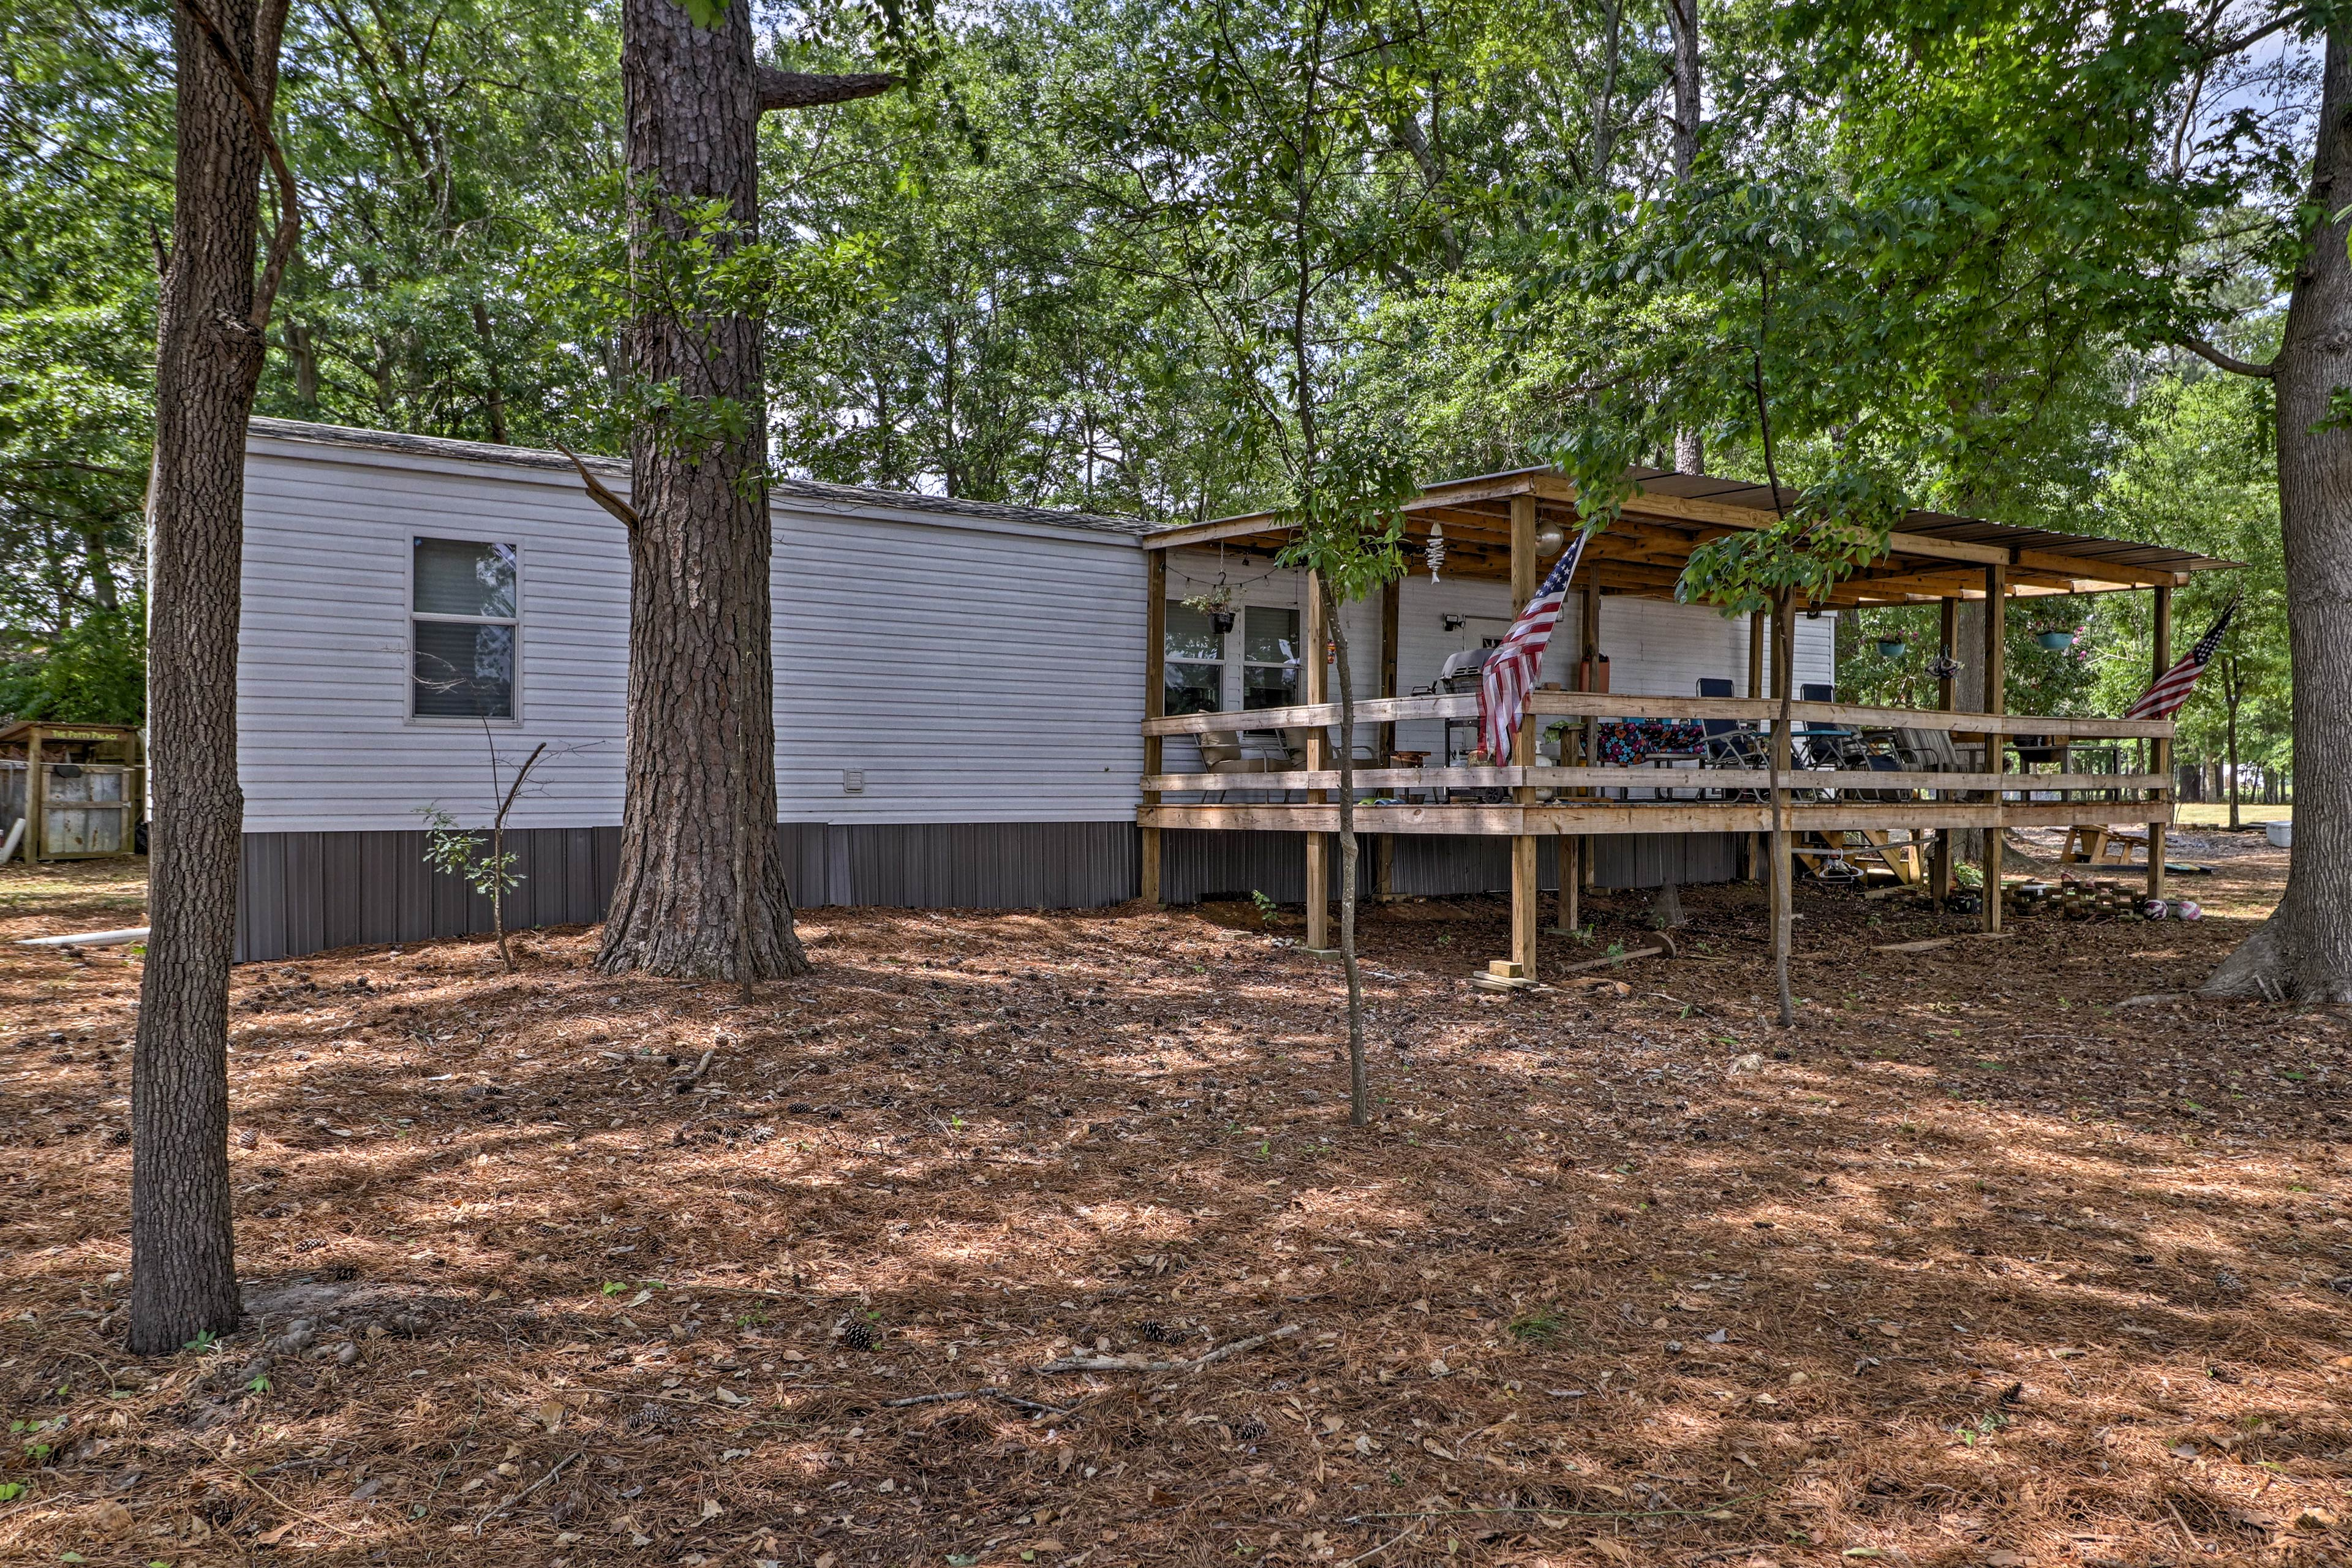 The home is located only 15 minutes from Wetumpka!